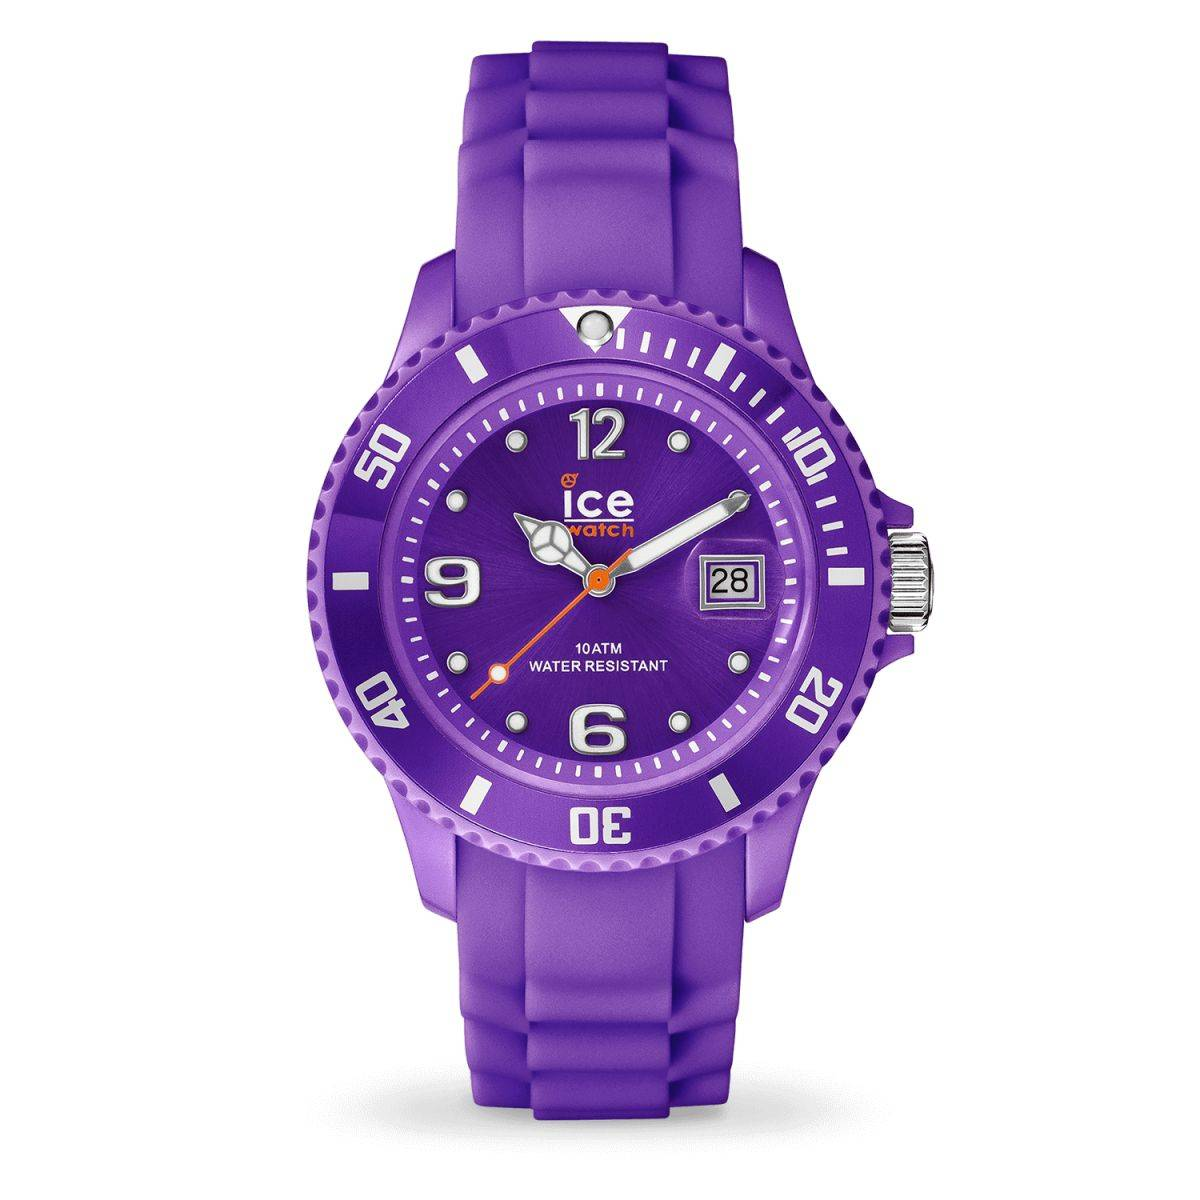 f0a82812b2734 Ice Watch - Montre Violette Bracelet Silicone Ice Forever (000131) Vue  Principale ...